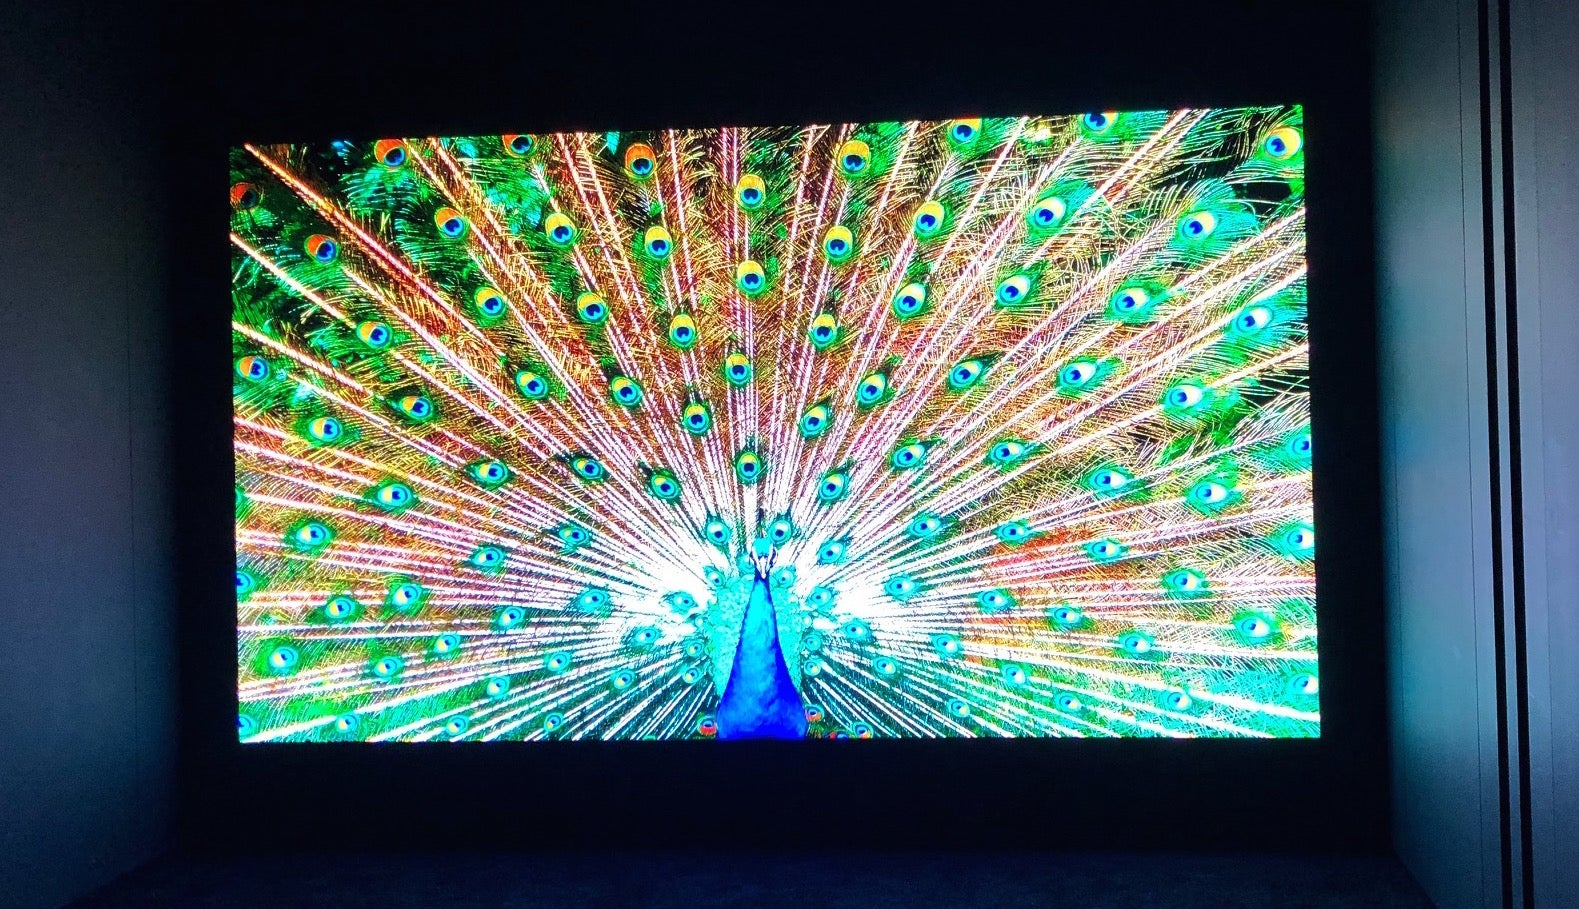 Microled Samsung Vs Lg Trusted Reviews